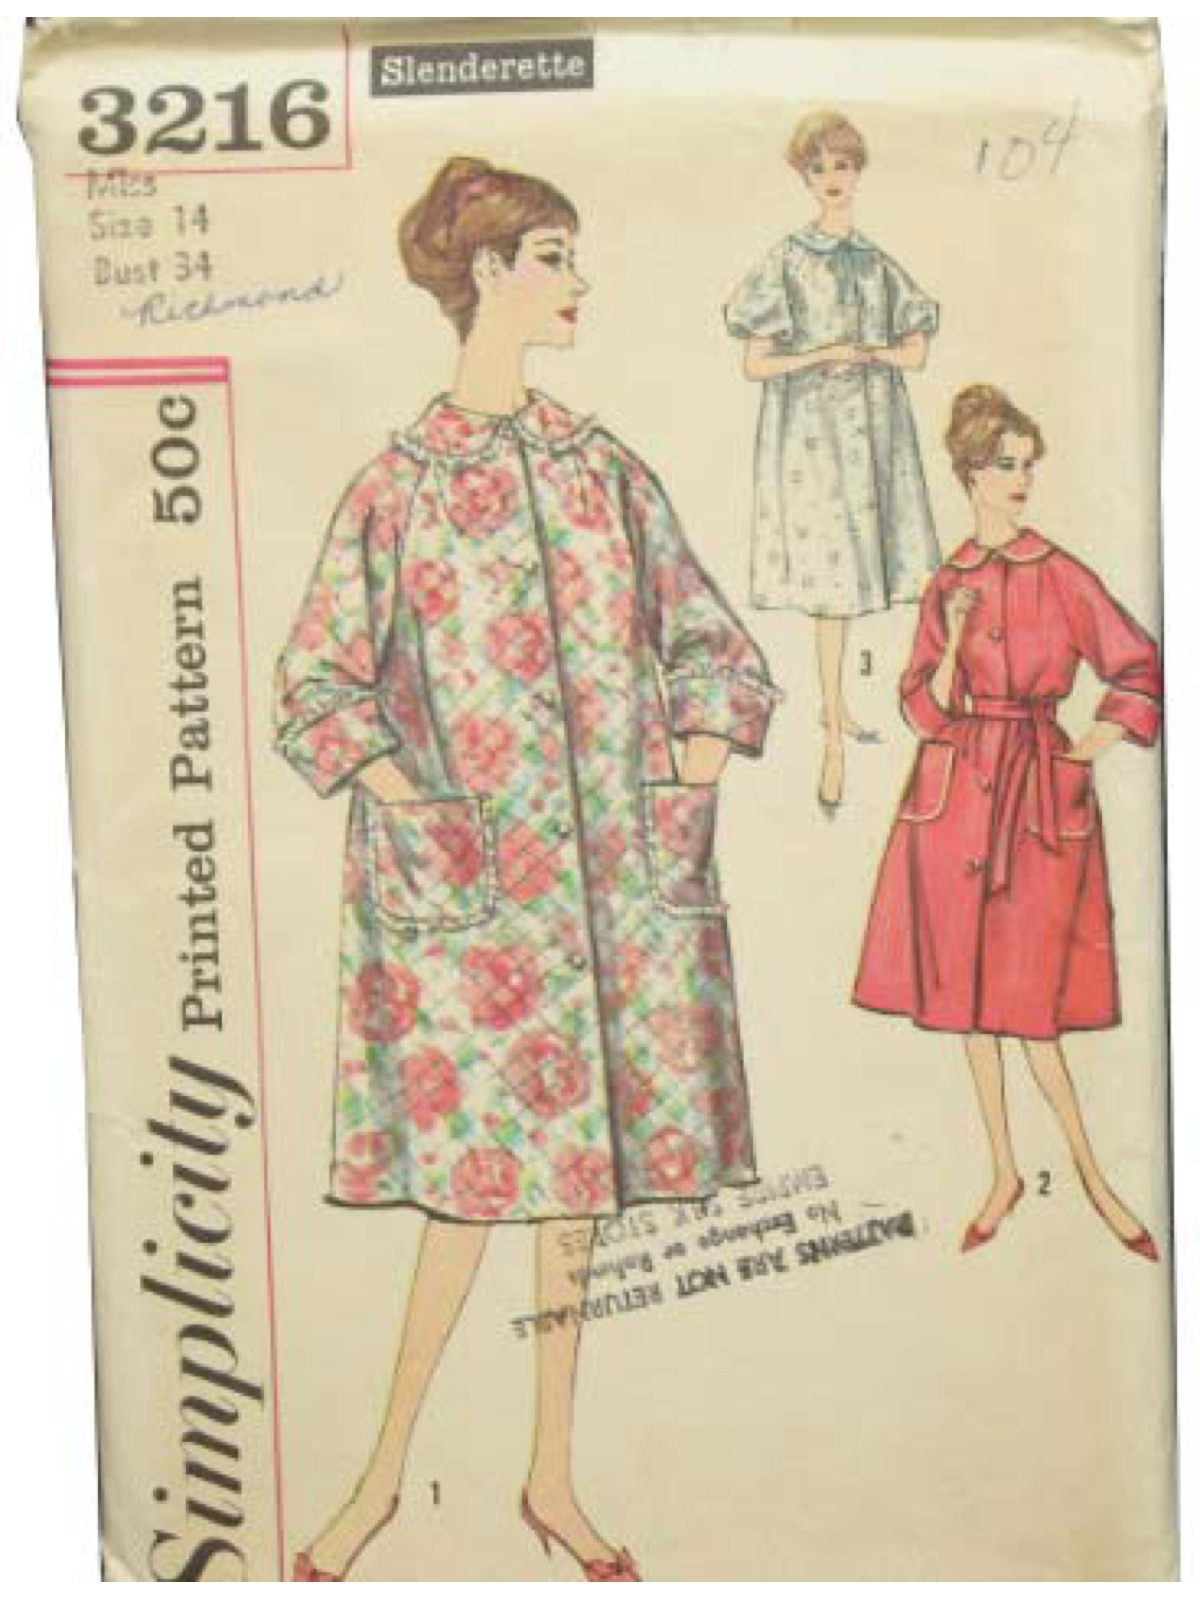 Fifties Sewing Pattern: 50s -Simplicity Pattern No. 3216- Misses ...